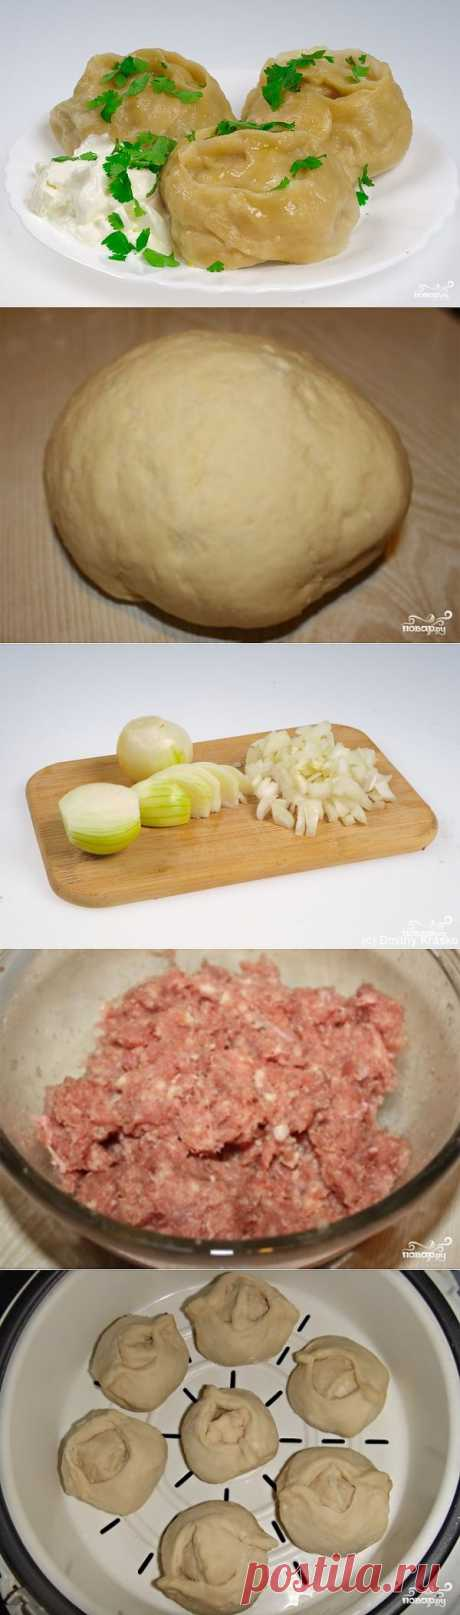 Manti in the crock-pot - the step-by-step culinary recipe on Повар.ру